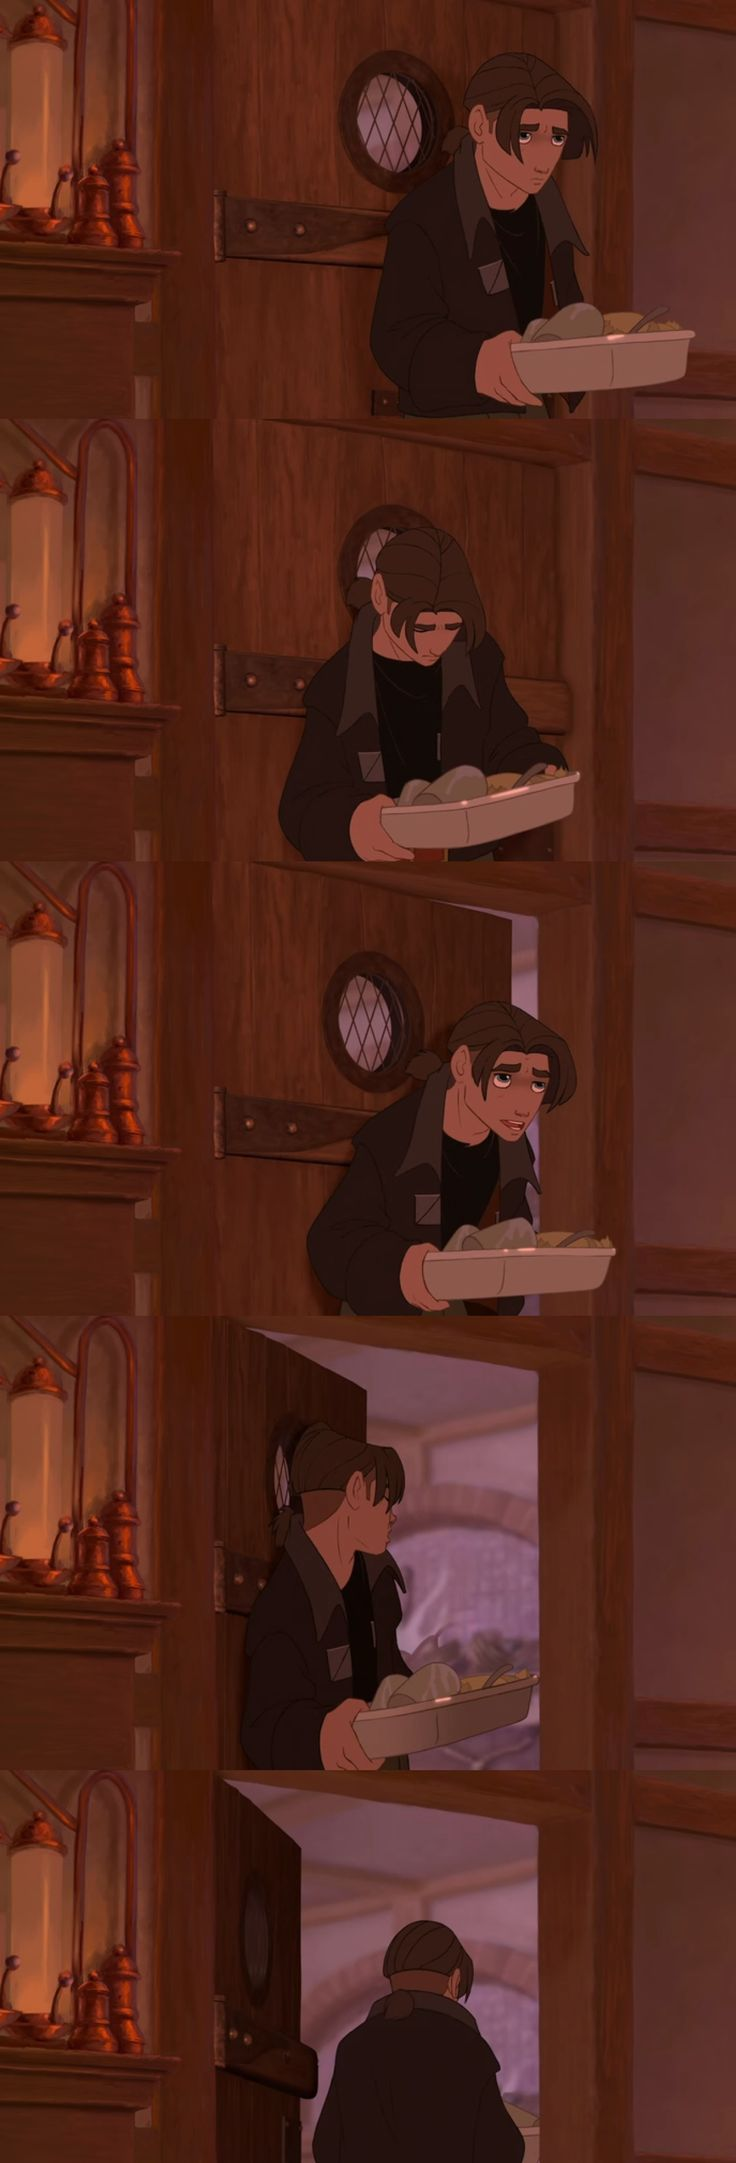 Treasure planet - Jim Hawkins  by K a t e r i n a ☼ ☾